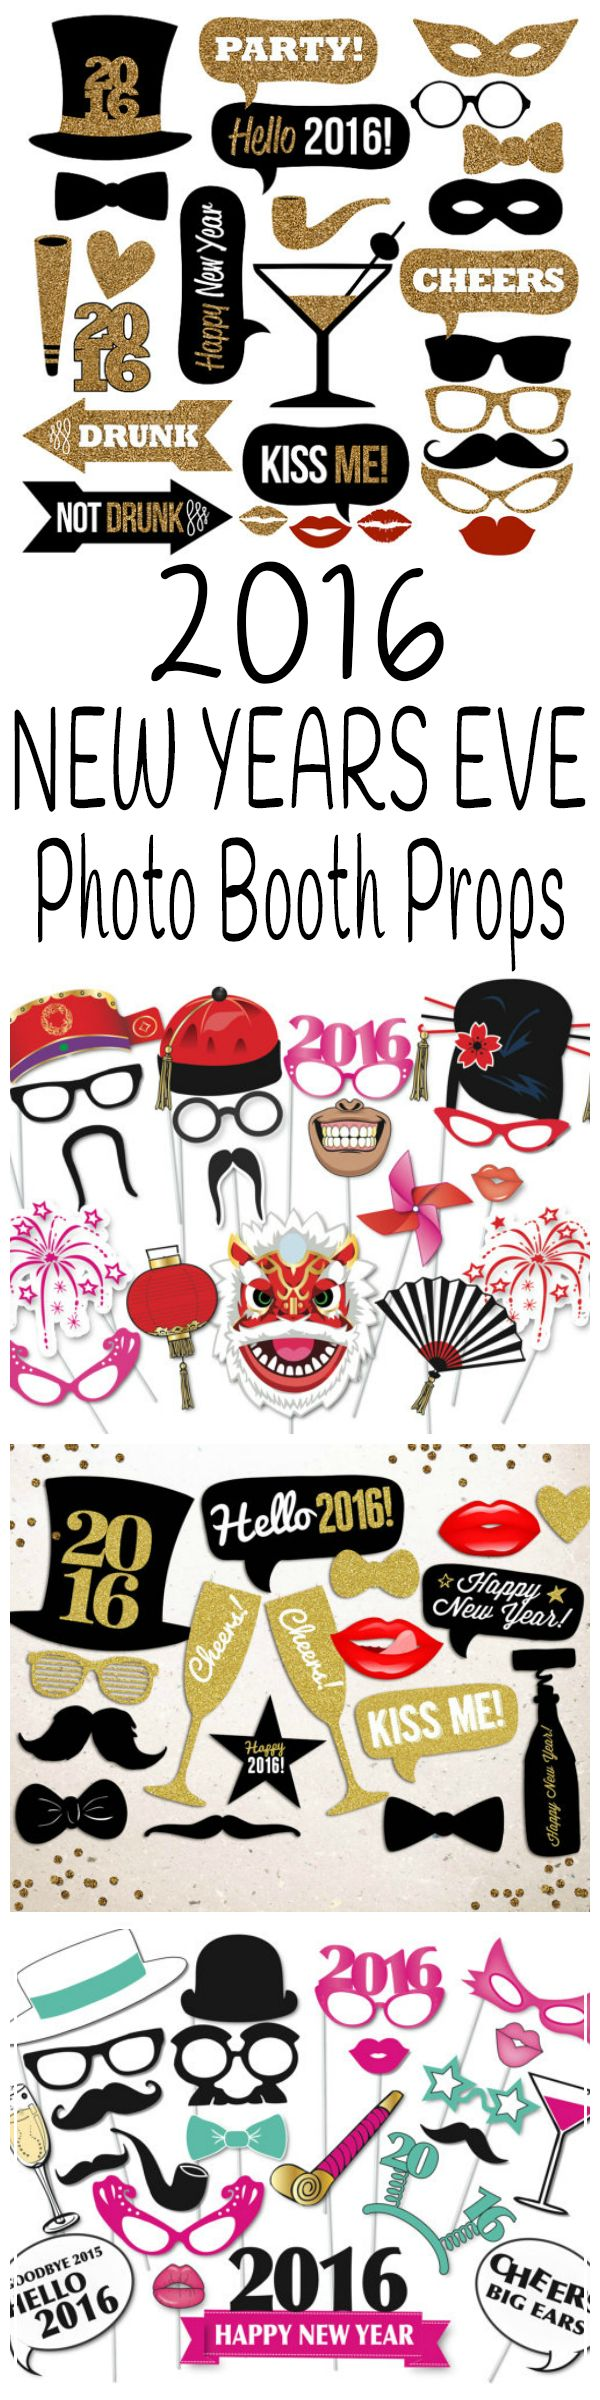 Ring in the new year with 2016 New Years Eve photo booth props.